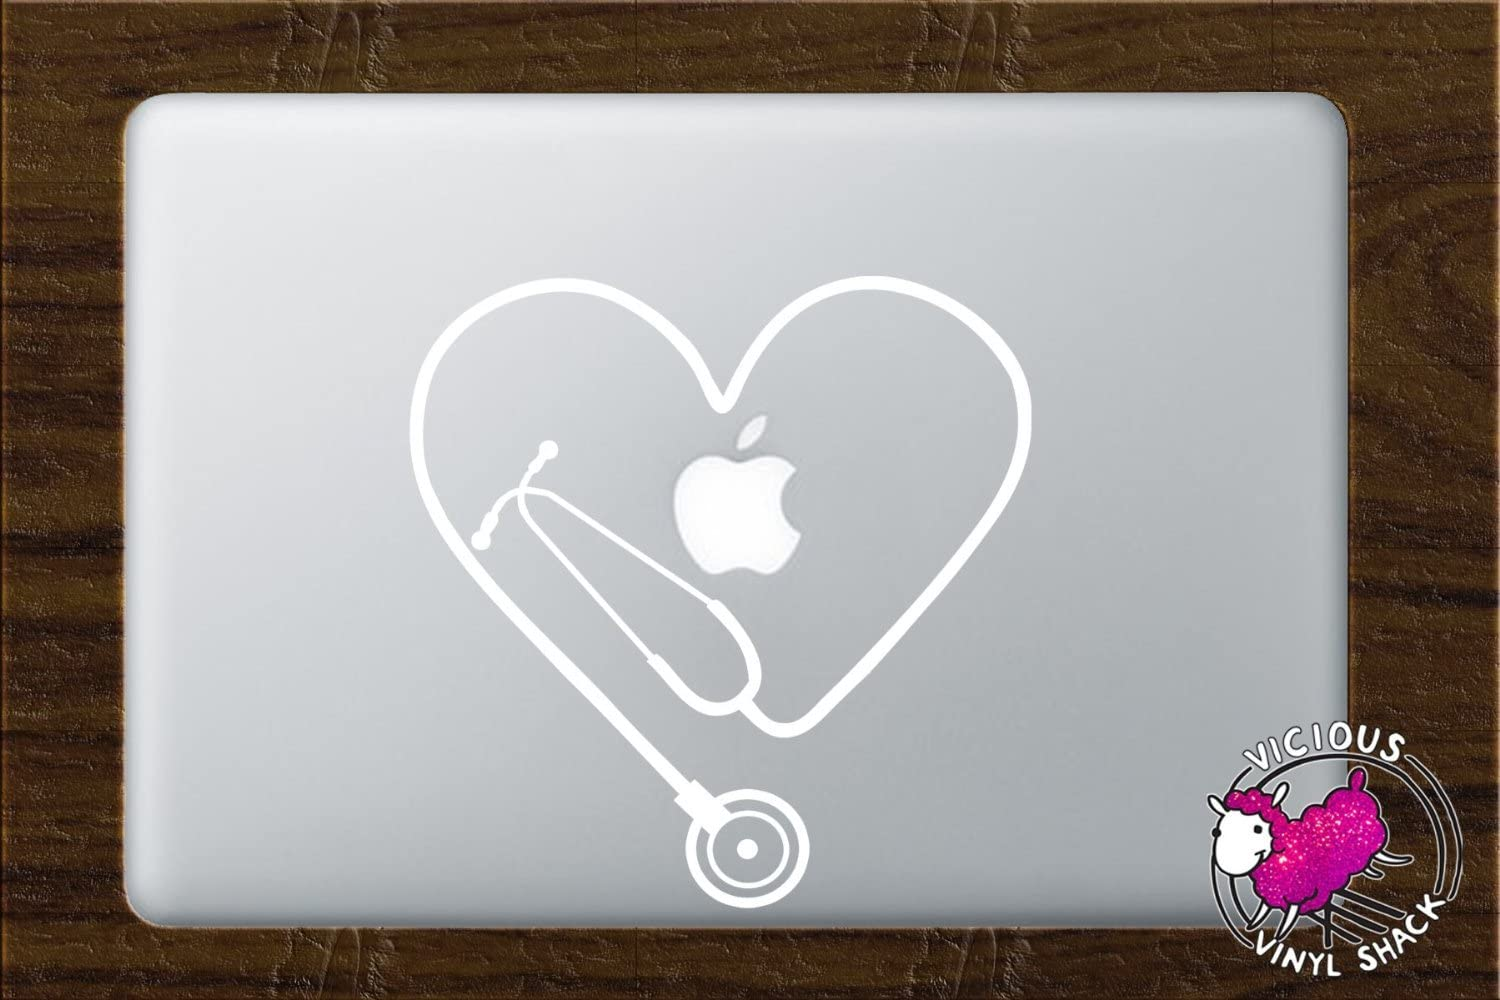 Stethoscope Heart Cutout (WHITE) Vinyl Decal Stickers for MacBook Laptop Car Nursing Tough Strength Strong Strength Hope Inspiration Love Doctor Nurse Veterinarian Health Medicine Hospital Med School